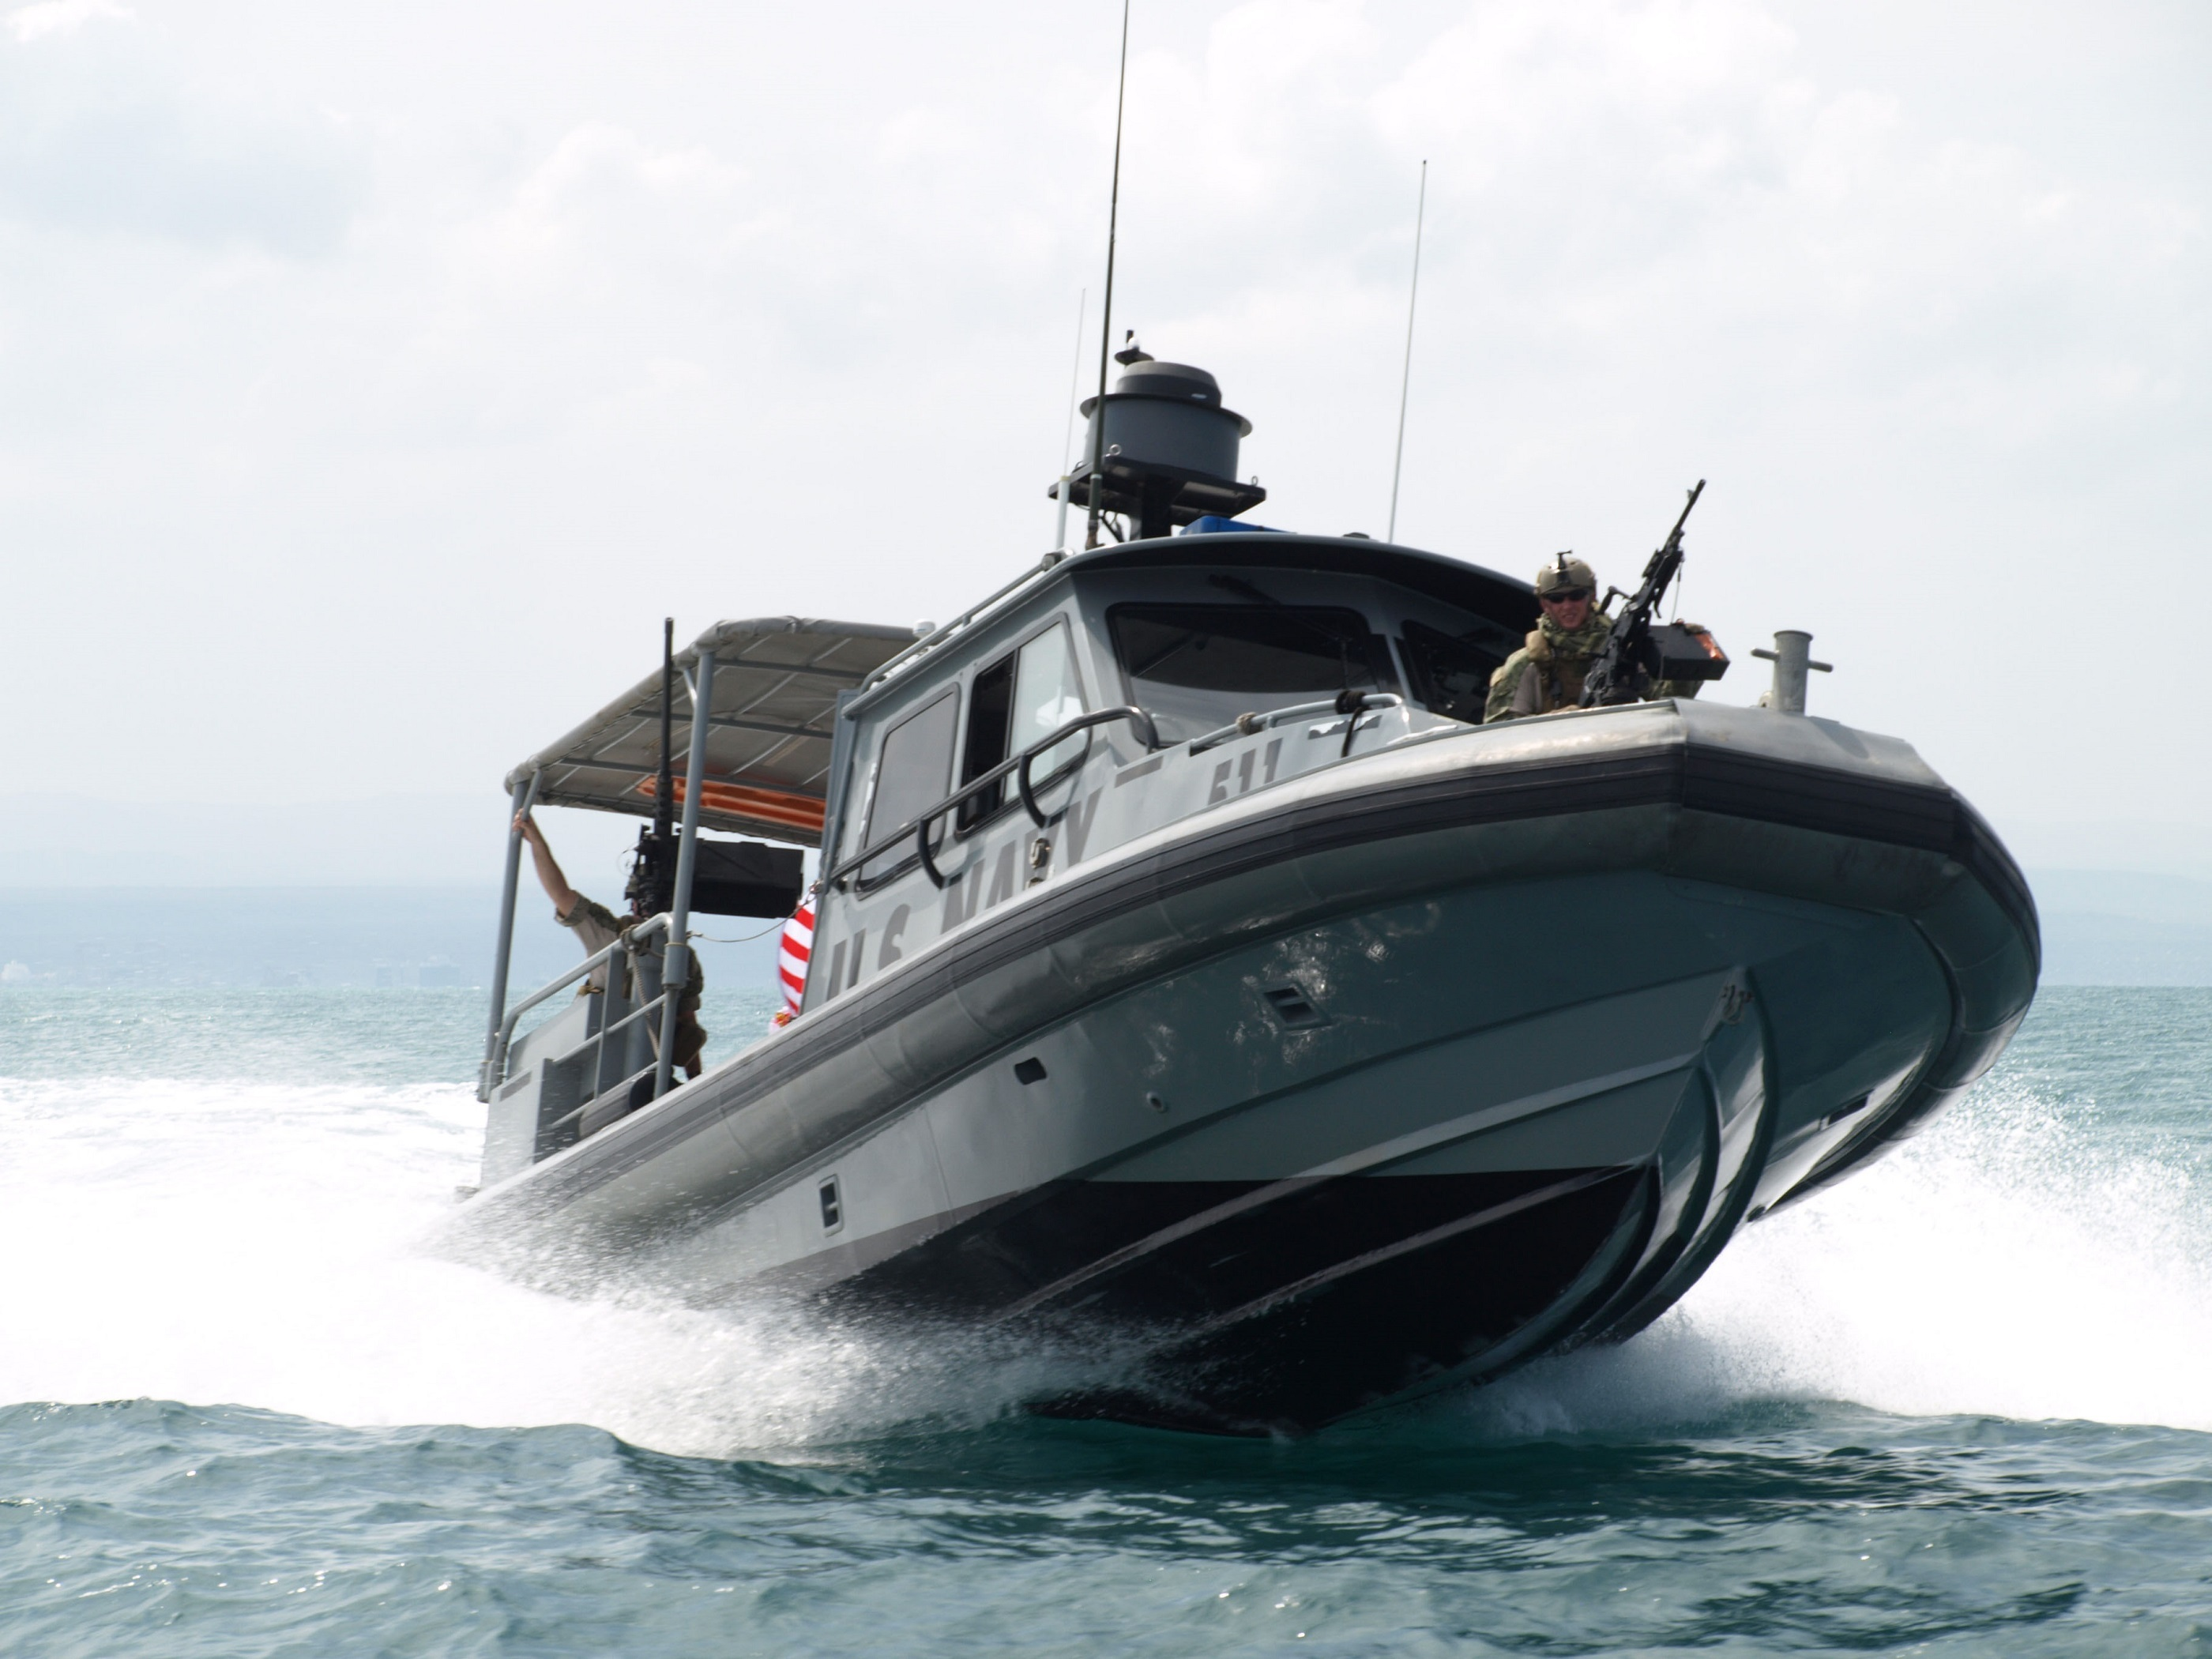 Patrol Boat, Boat, Guard, Ocean, Patrol, HQ Photo